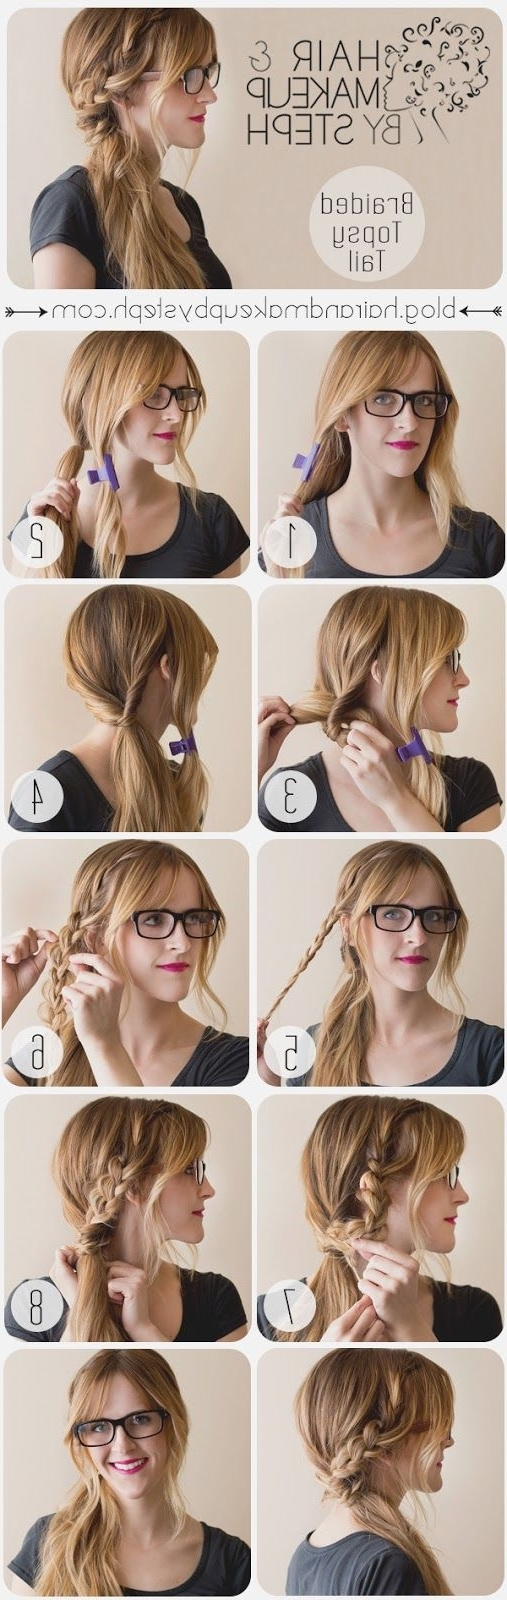 Topsy Tail Hair Styles Regarding Newest Messy Side Ponytails (View 11 of 20)